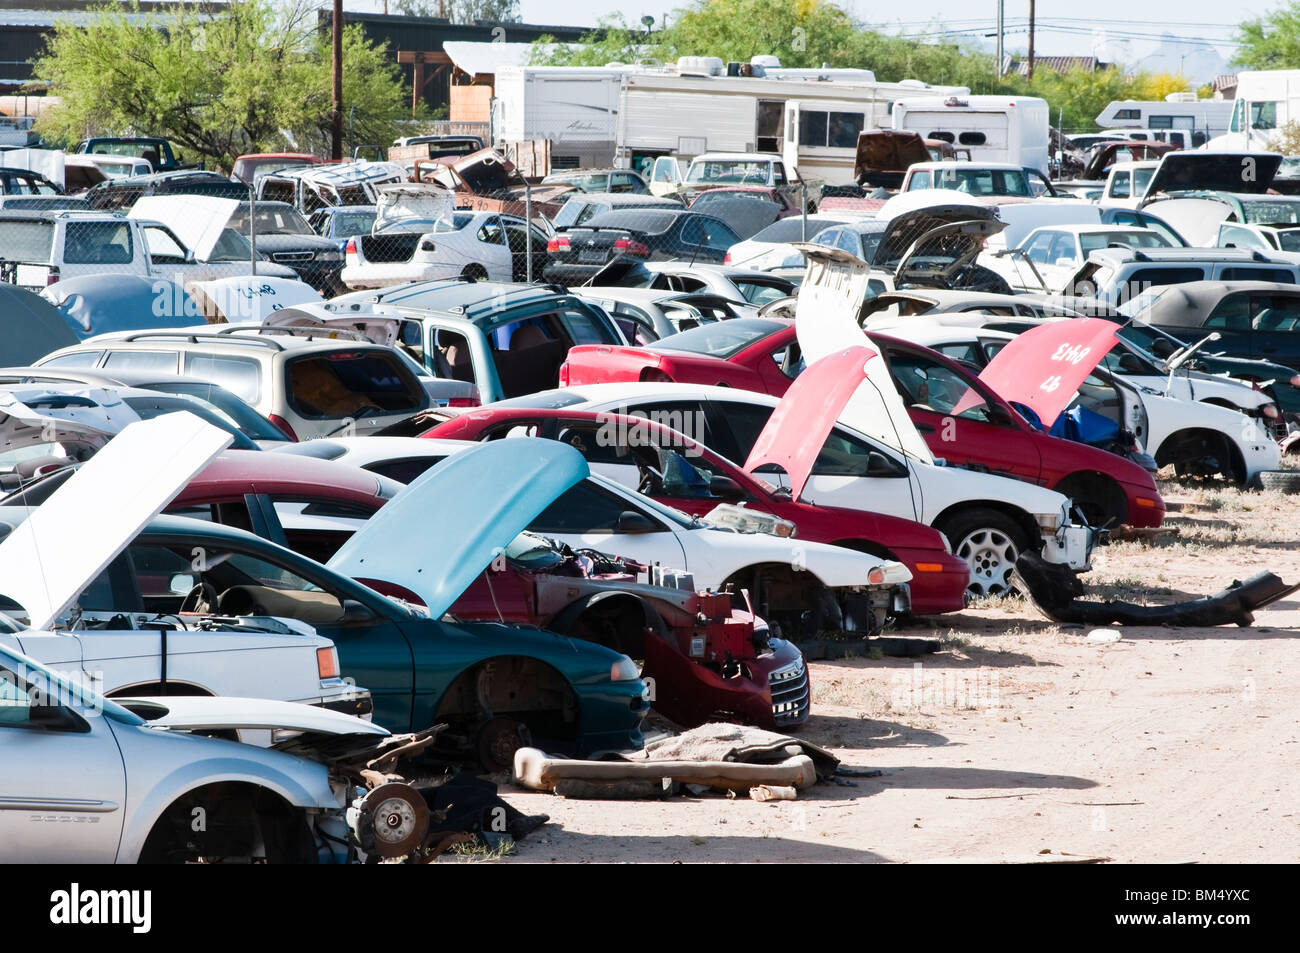 cars in a salvage yard being used to recycle parts - Stock Image